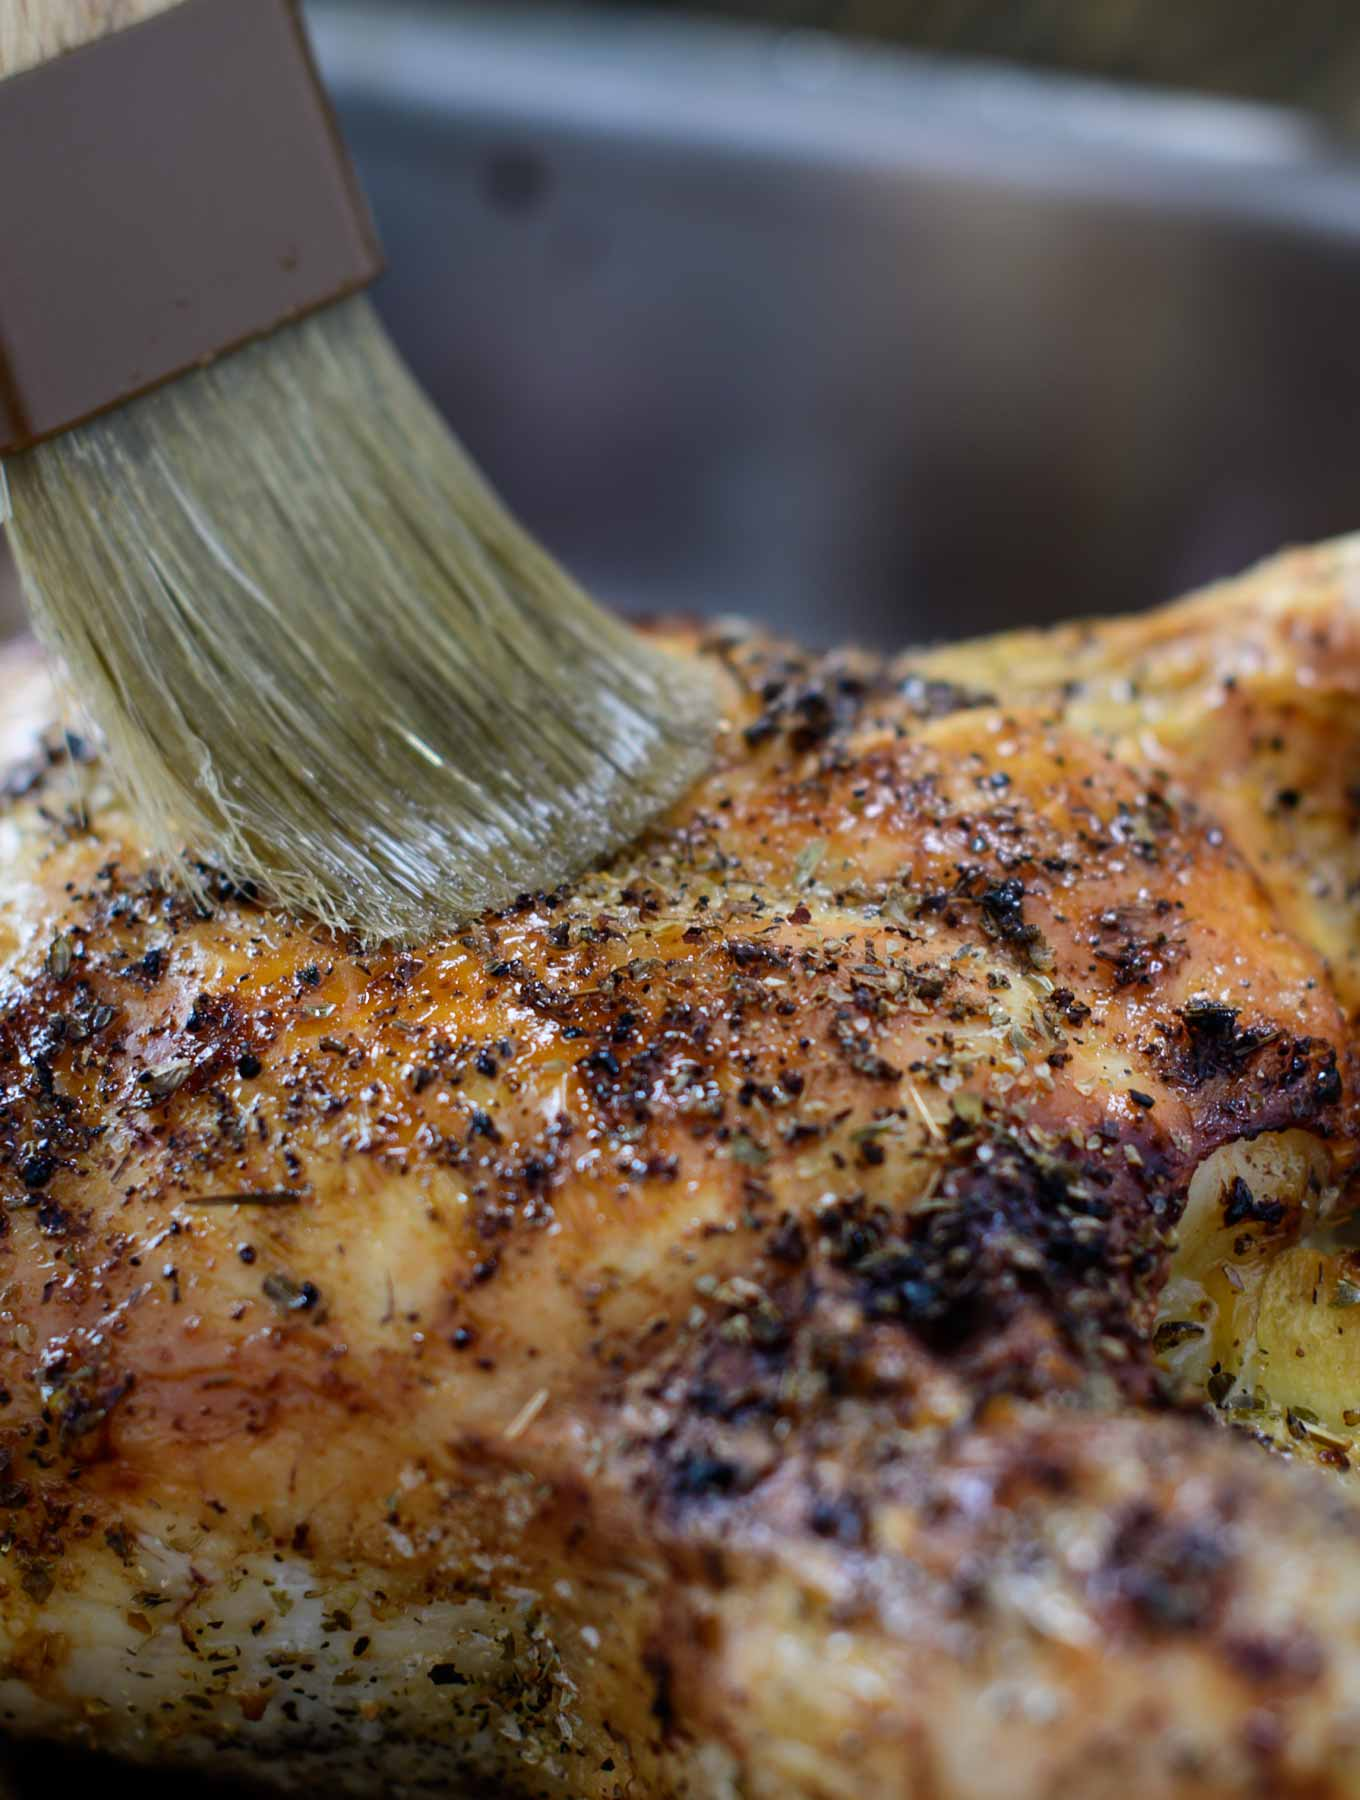 Basting a roasted chicken with white truffle oil